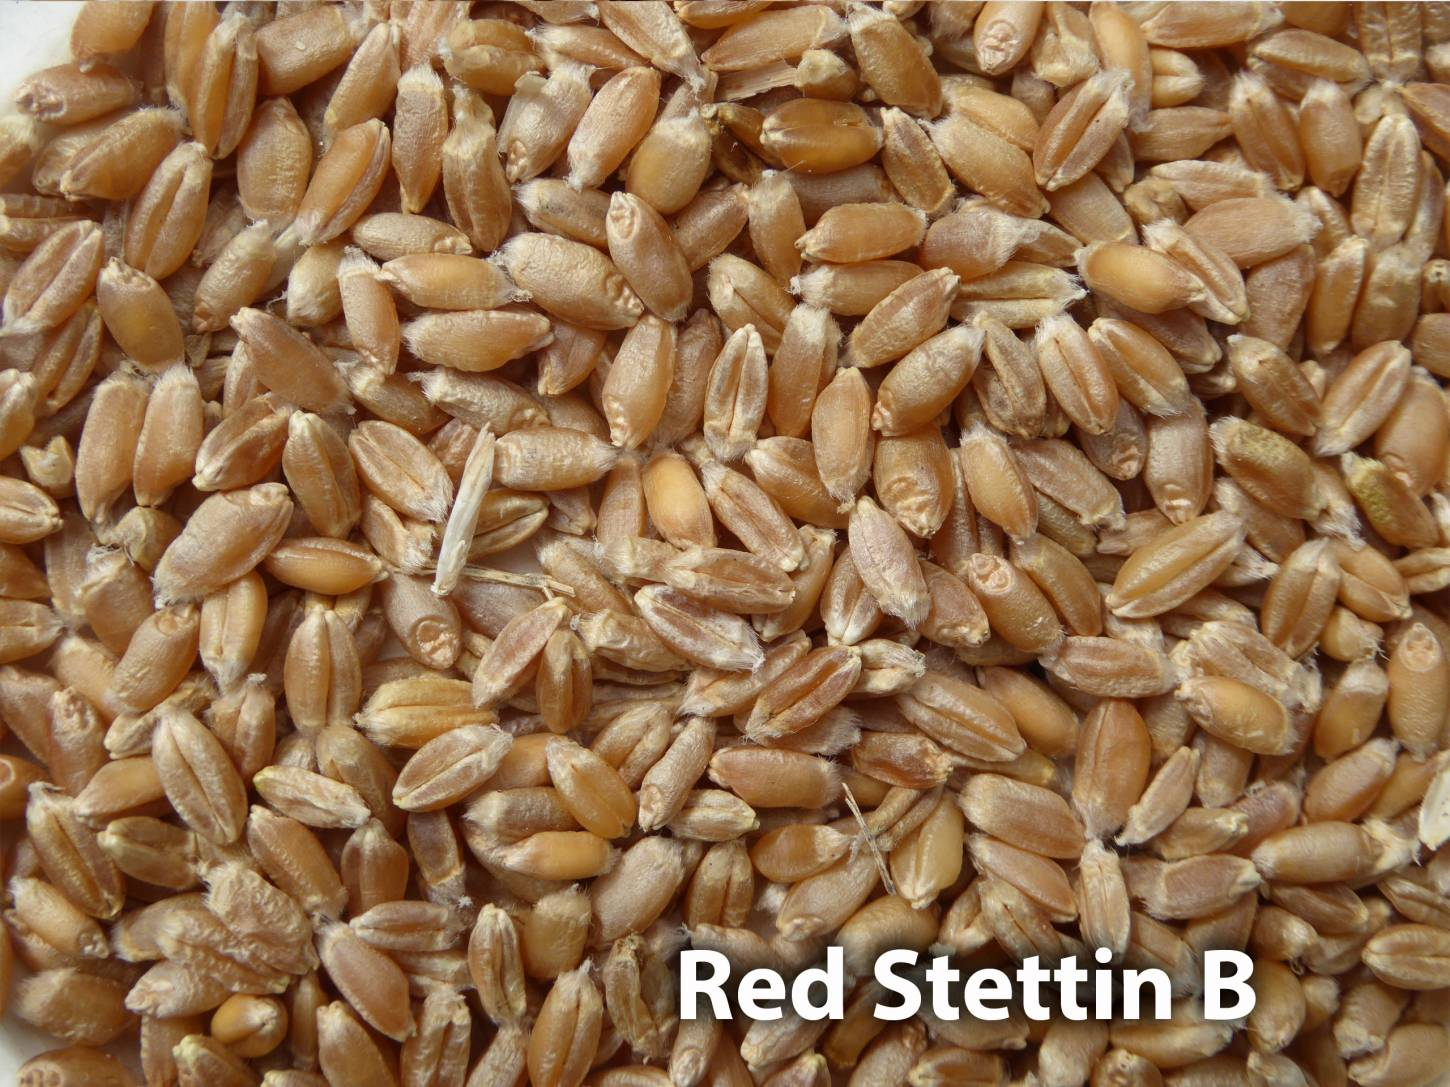 <a href='http://www.wheat-gateway.org.uk/hub.php?ID=57' target='_blank'>Red Stettin</a> grain samples, Red Stettin B